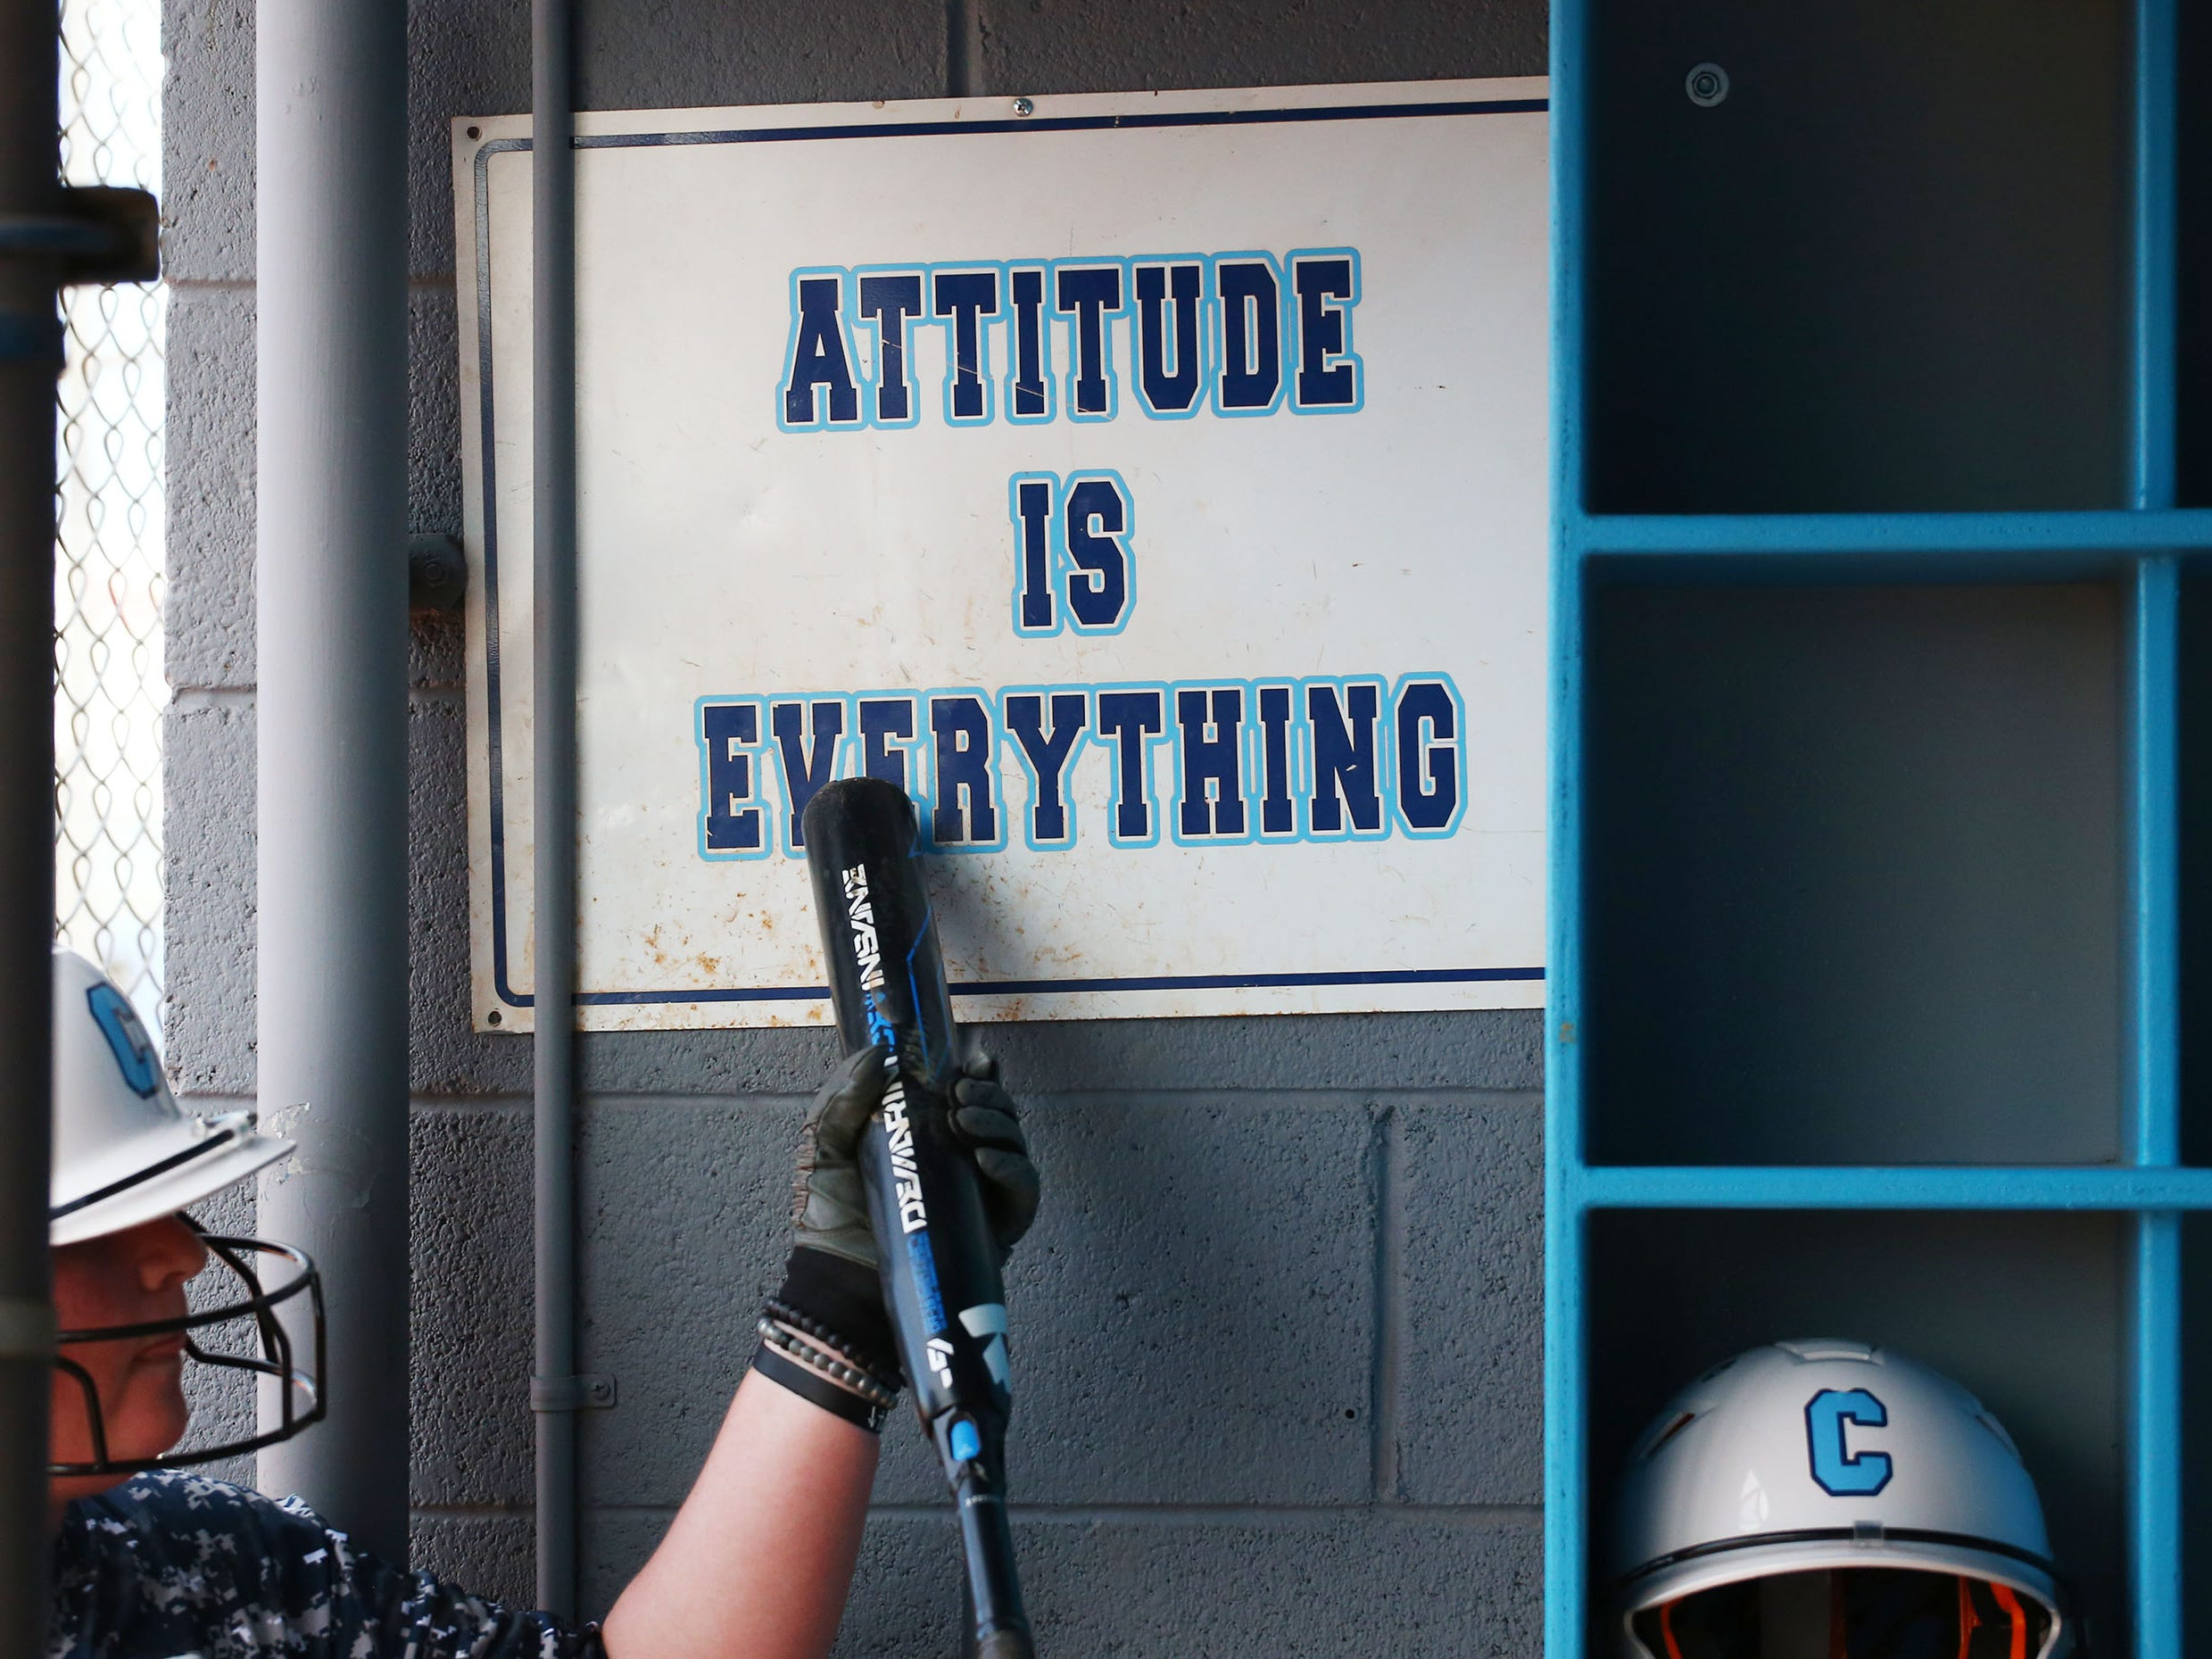 Cactus High softball player McKenna Feringa taps her bat on the 'Attitude Is Everything' sign in the dugout during practice on Apr. 2, 2019 at Cactus High School in Glendale, Ariz.